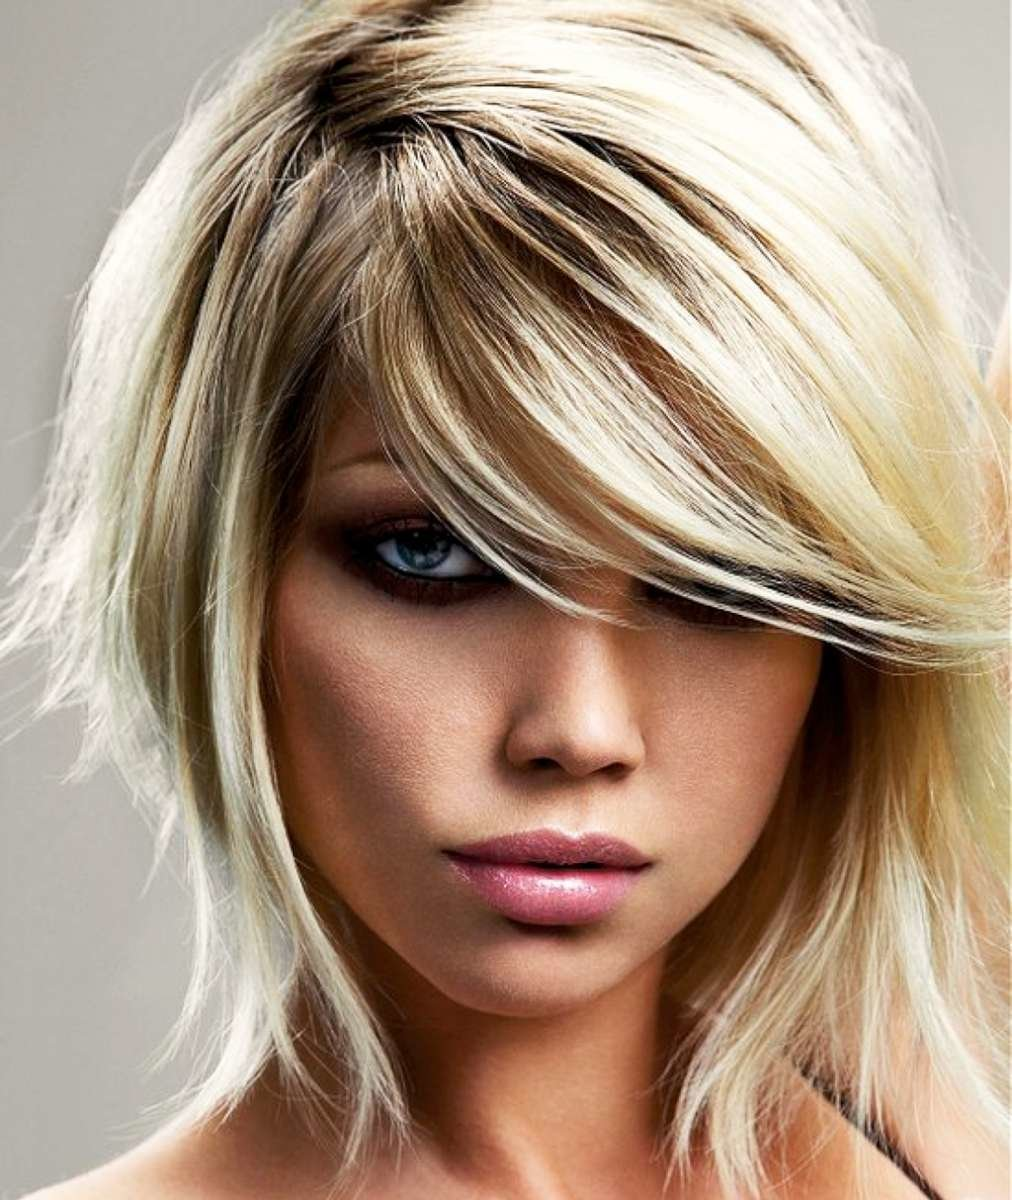 Free Cool Hairstyles Wallpaper